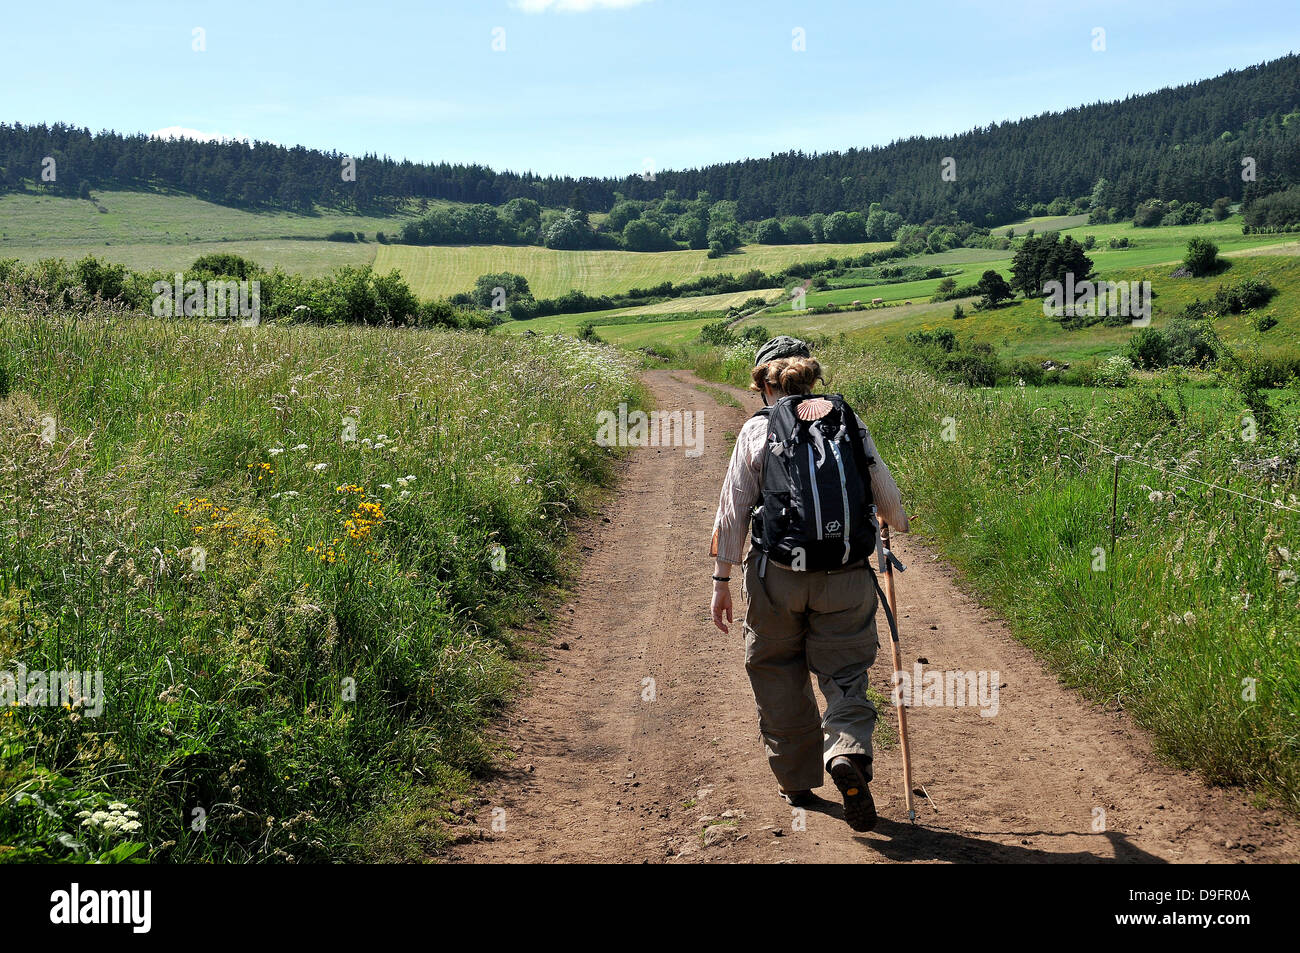 Pilgrim on the Way of St. James, Christian pilgrimage route ...